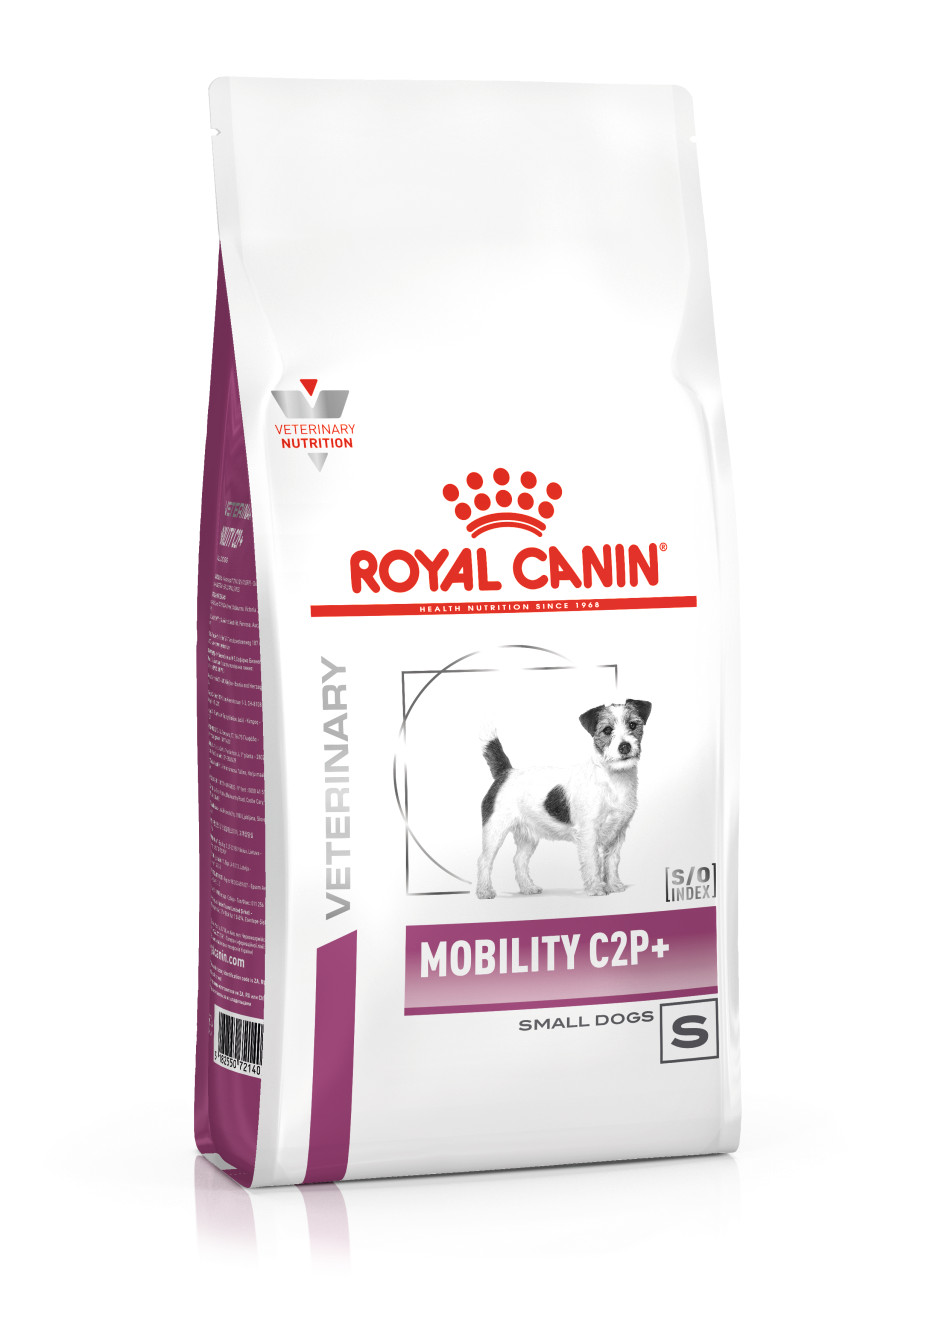 Royal Canin Veterinary Diet Mobility Small Dogs C2P+ hondenvoer